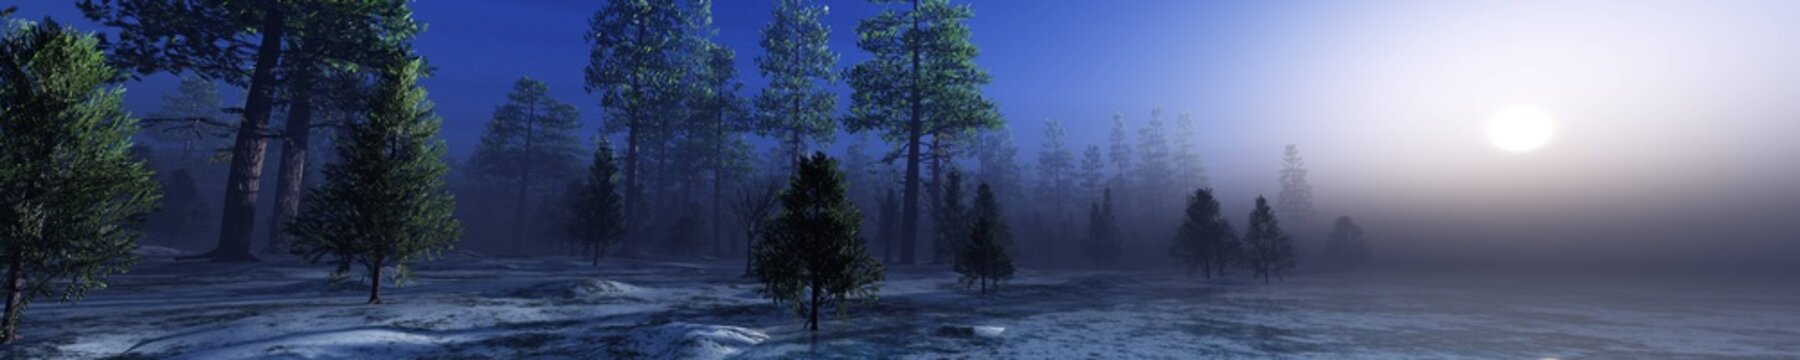 Forest over ice, River in the morning in fog, lake in haze, forest over frozen water in the sun, trees in fog over ice